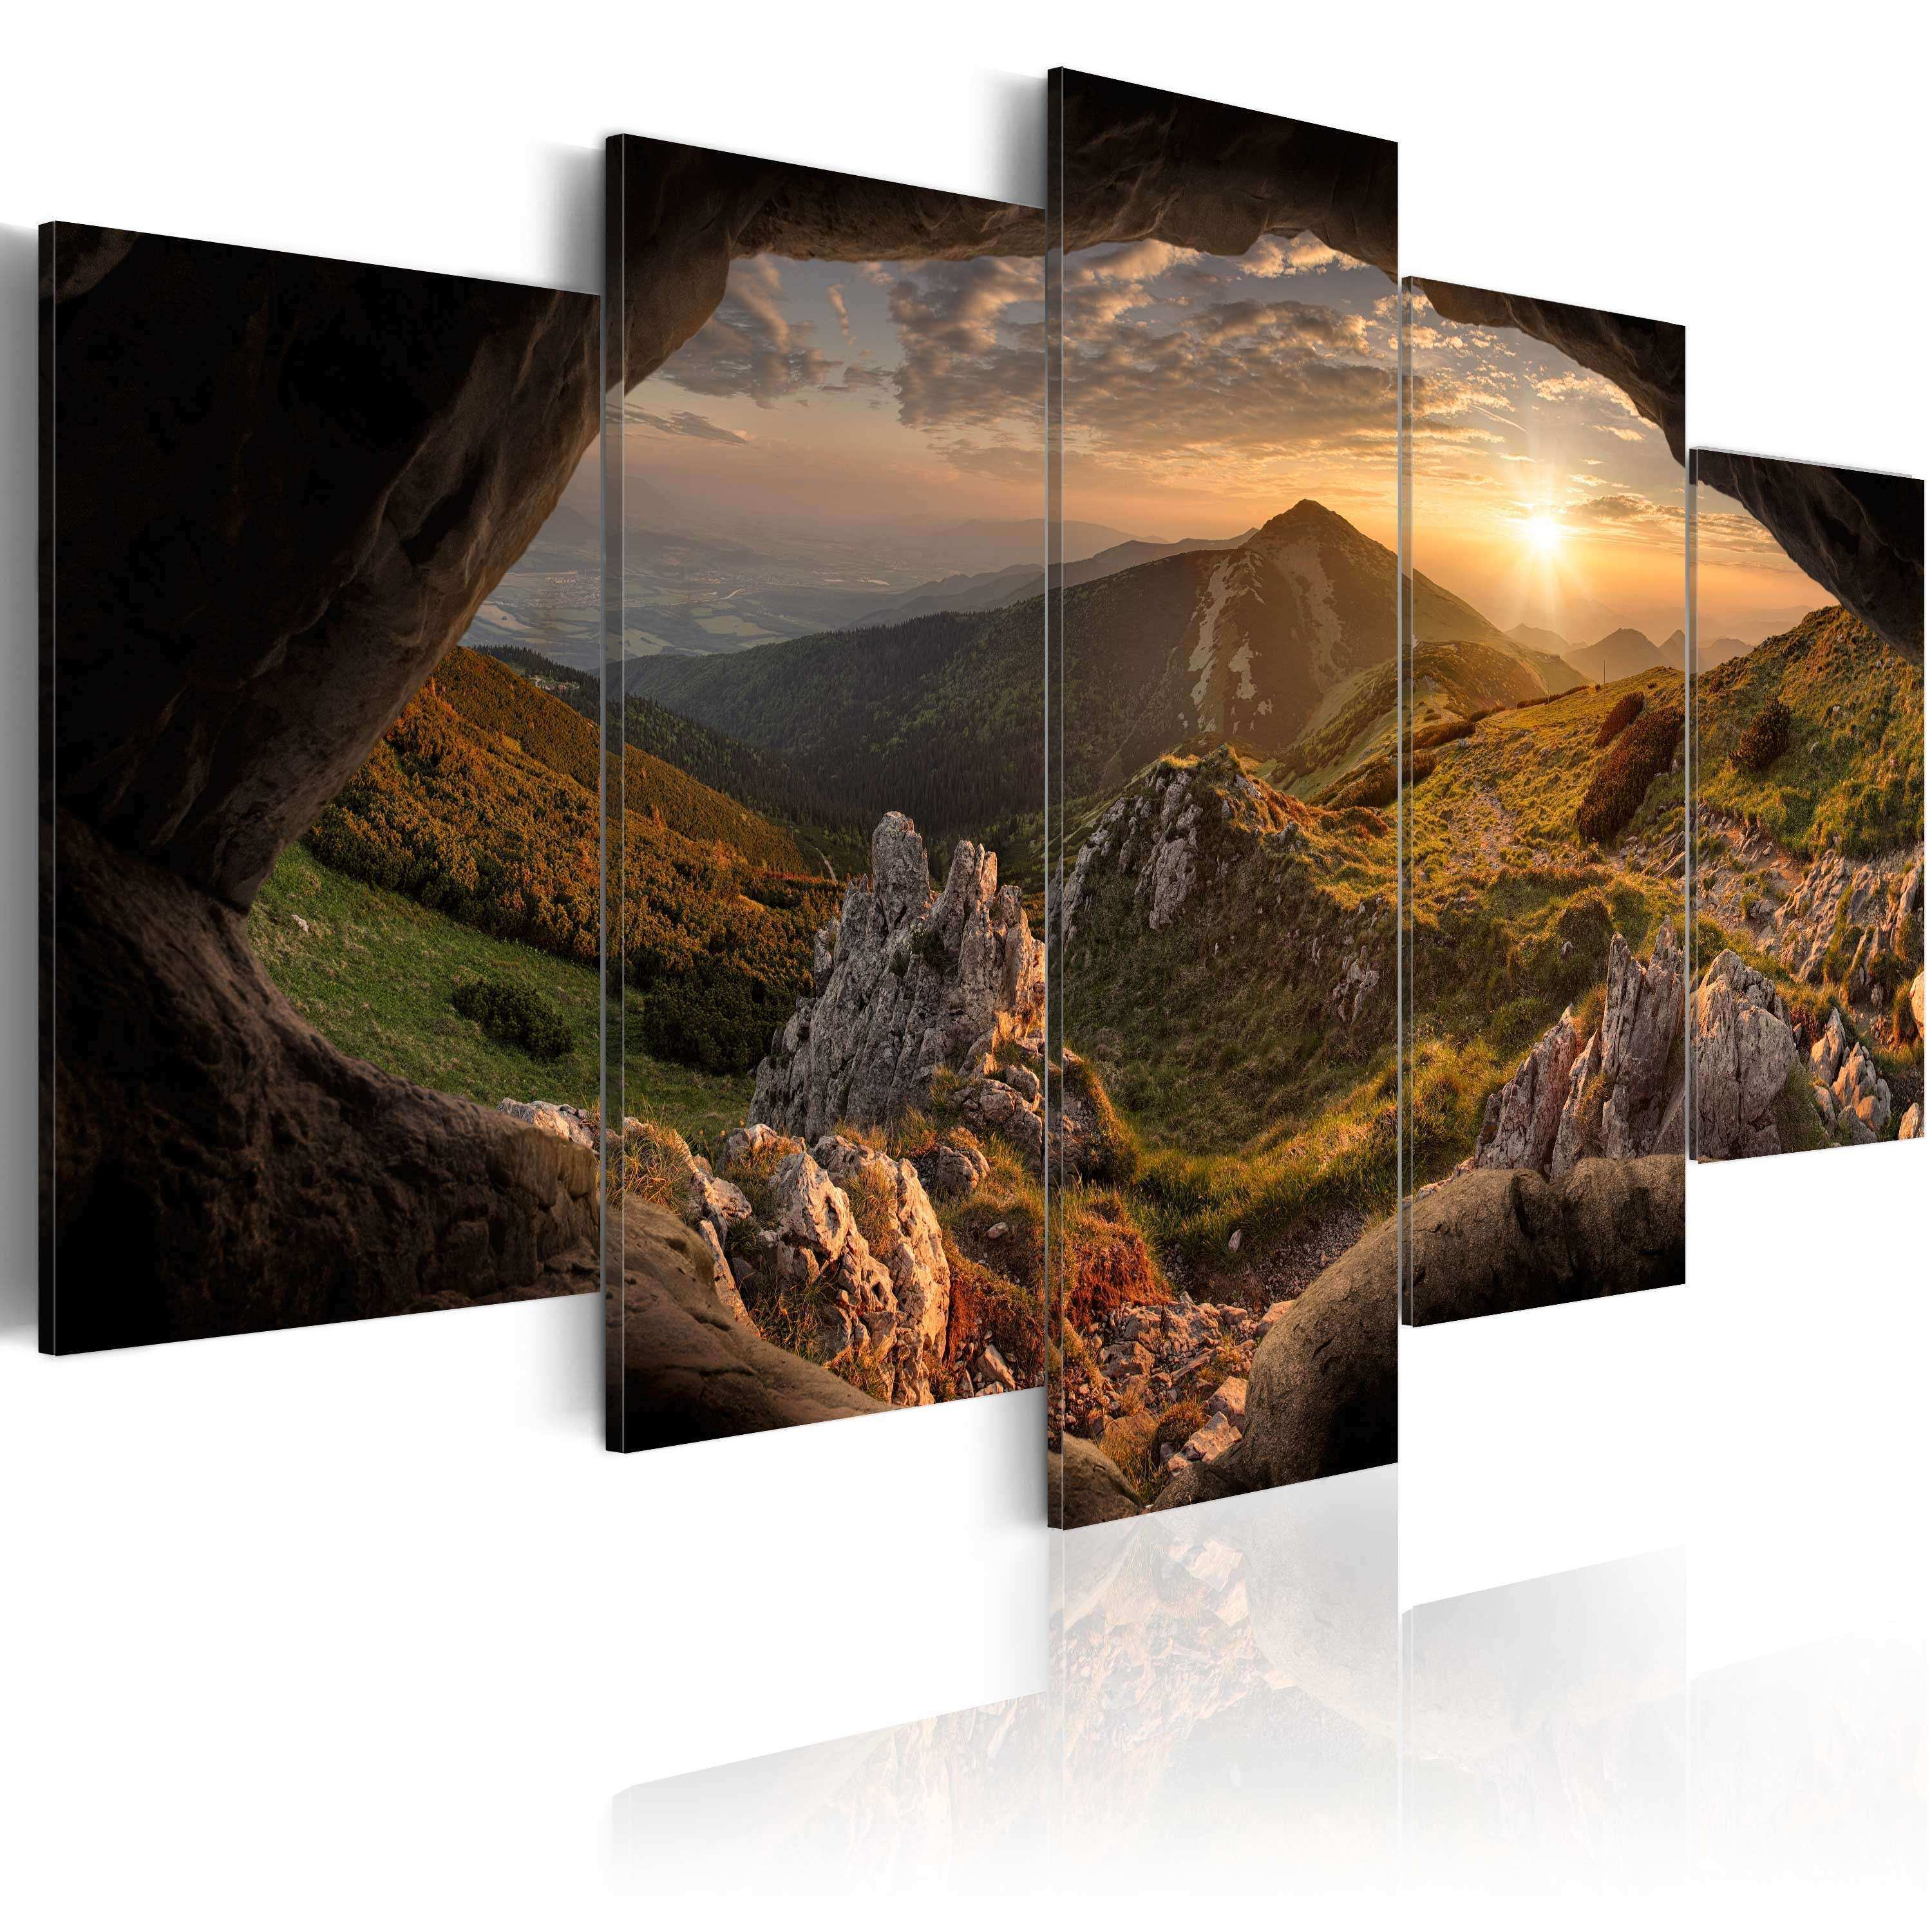 LARGE CANVAS WALL ART PRINT IMAGE PICTURE PHOTO NATURE